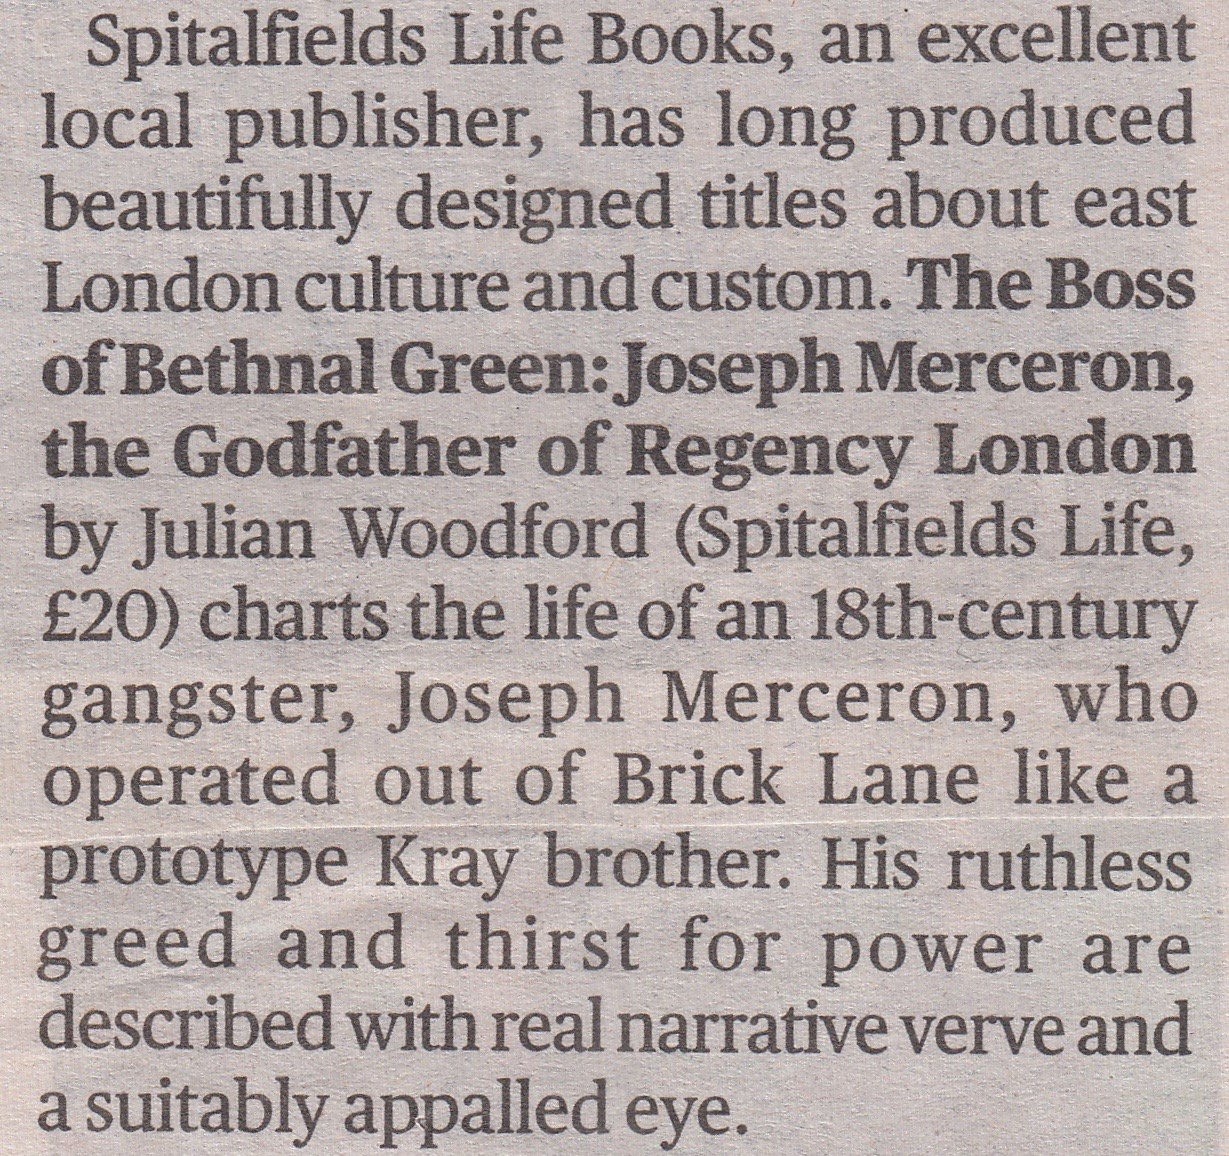 We are thrilled that the Evening @standard chose the BOSS OF BETHNAL GREEN as one of the Best London Books of the Year! @josephmerceron https://t.co/beQ1orSJLU